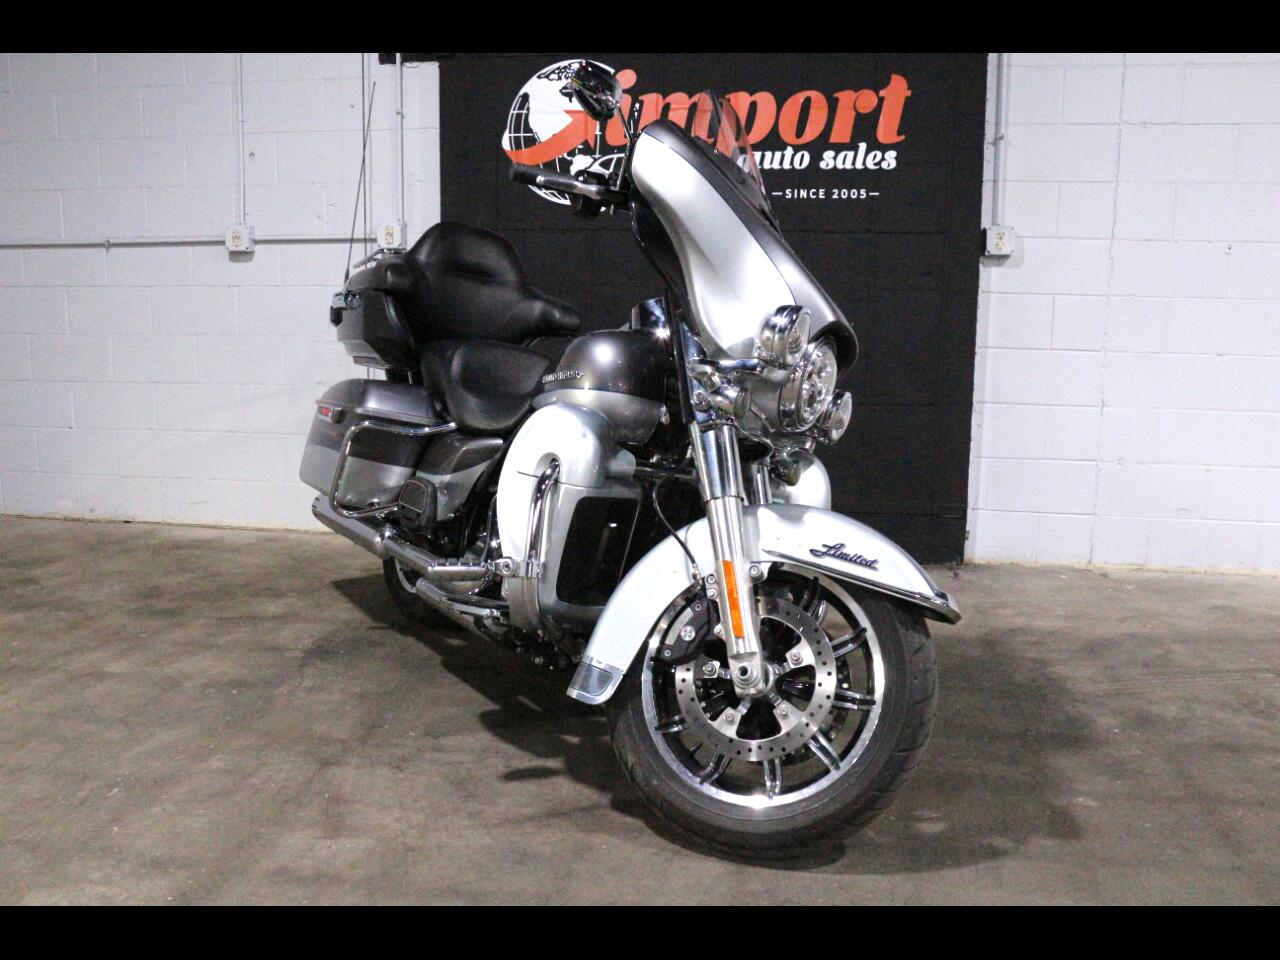 used 2014 harley davidson flhtk ultra classic limited for sale in minneapolis mn 55416 import auto sales used 2014 harley davidson flhtk ultra